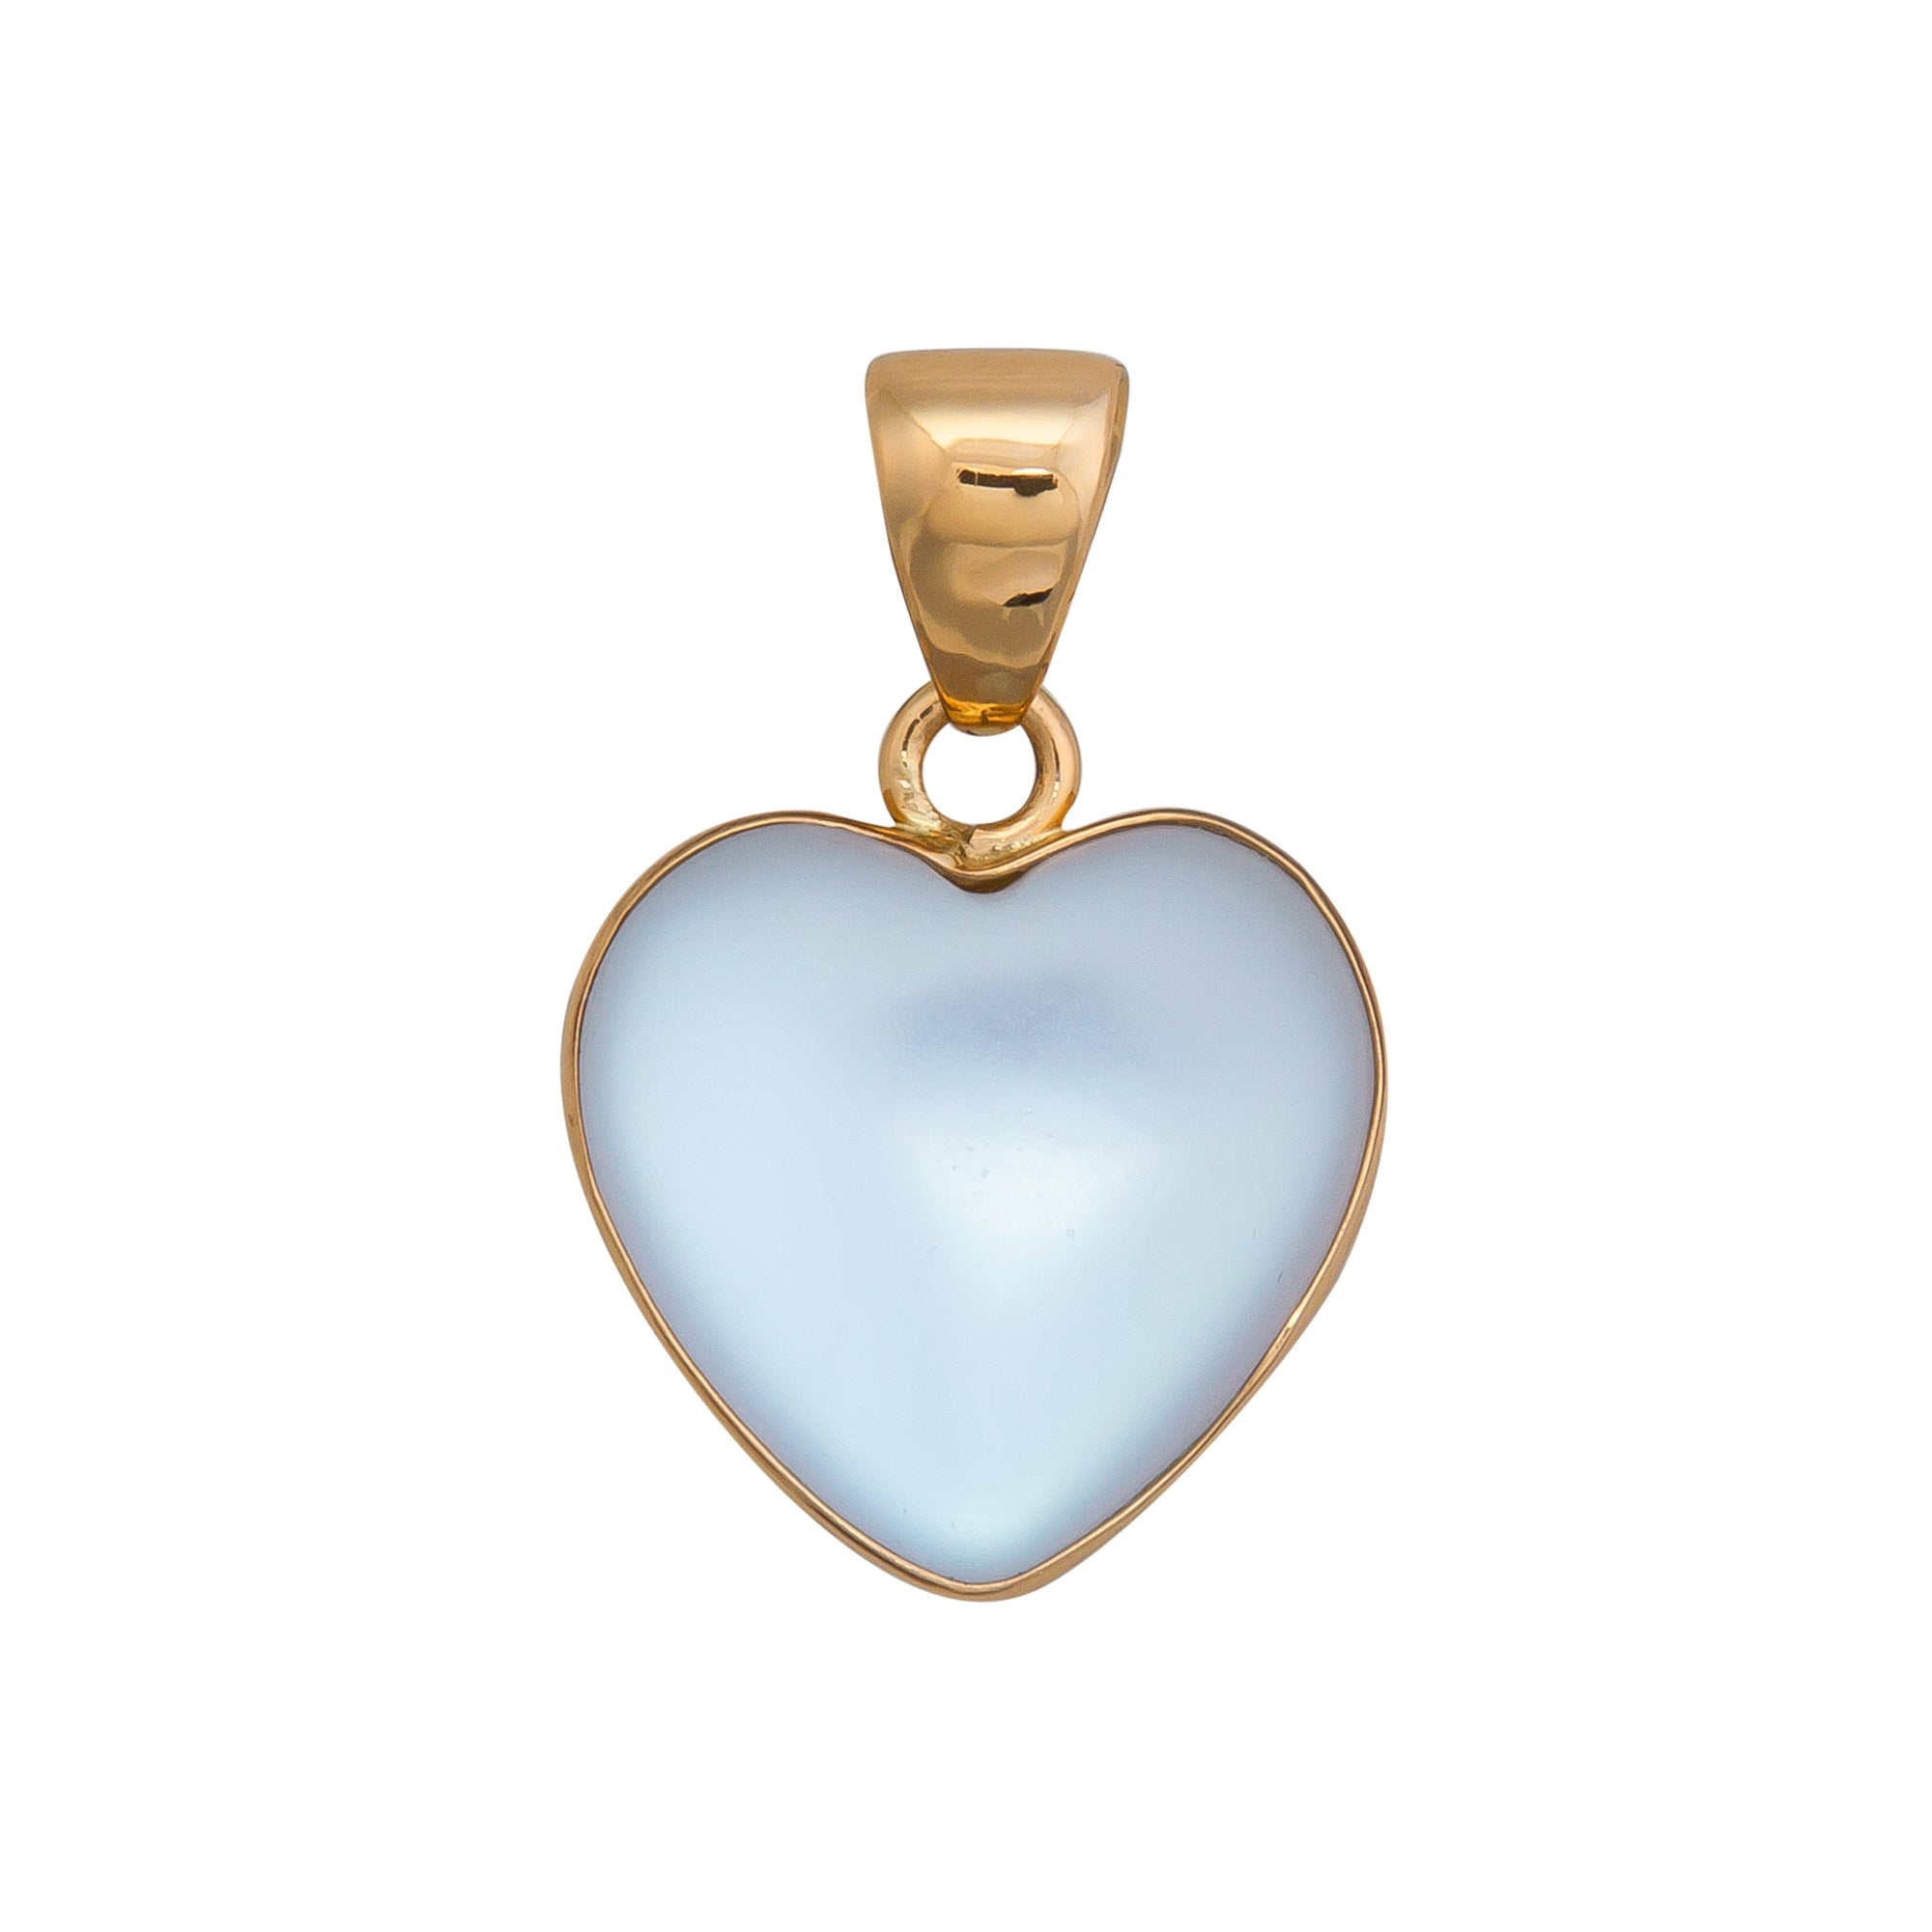 Alchemia Luminite Heart Pendant